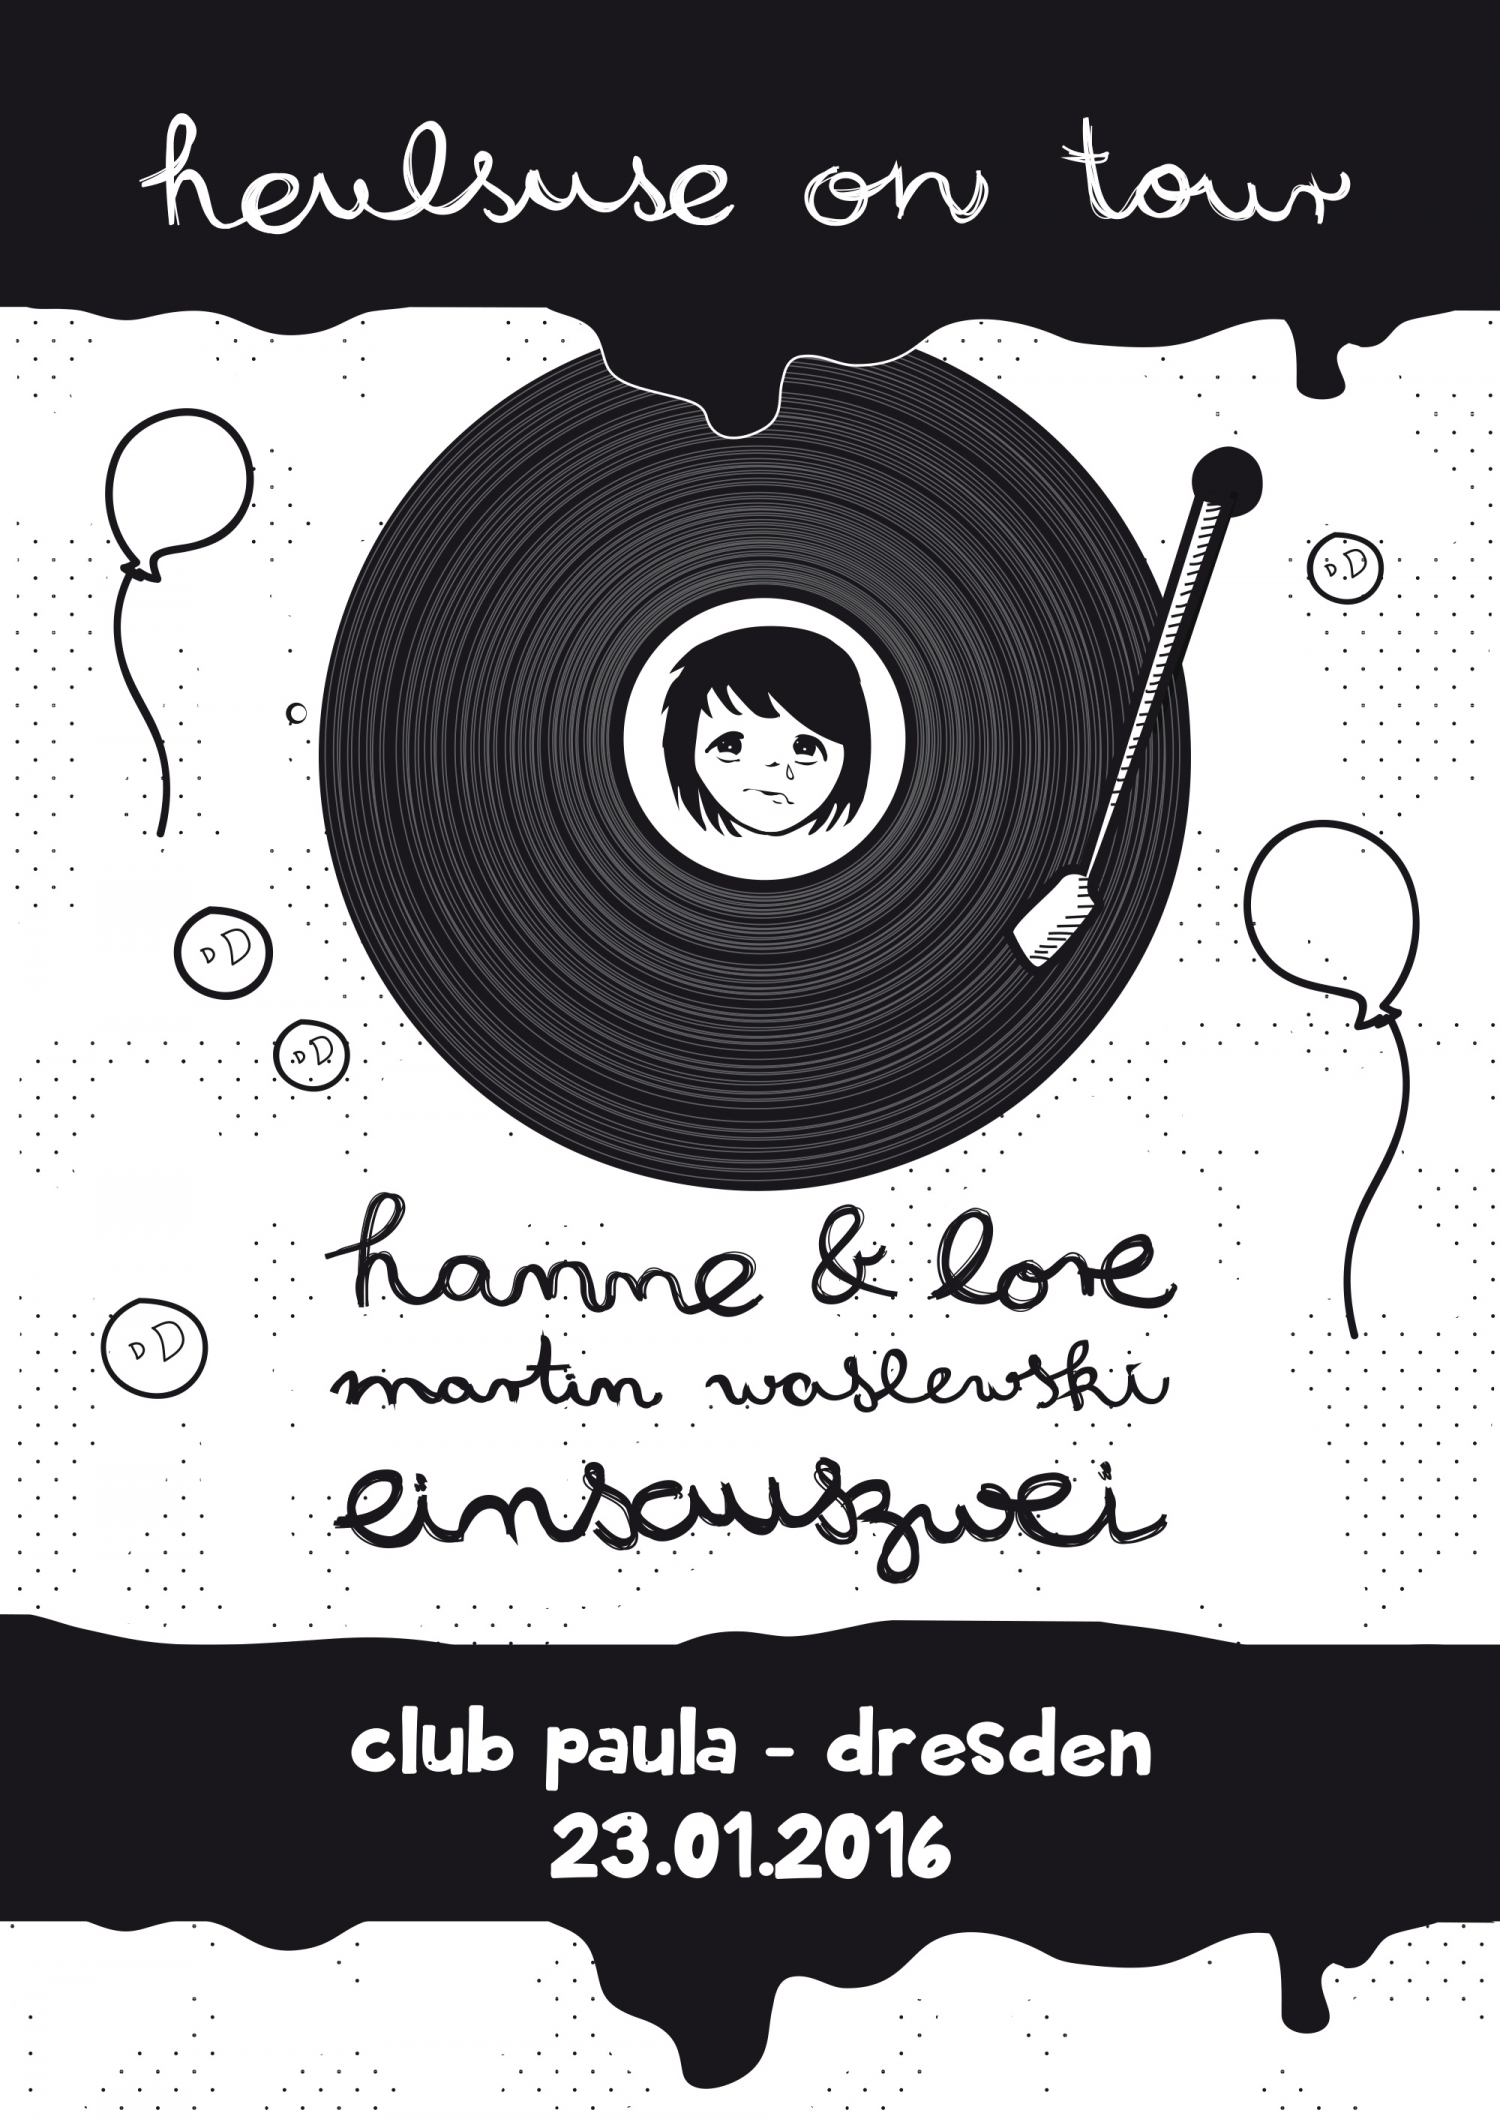 23.01.2016 – heulsuse on Tour mit Hanne & Lore – Club Paula, Dresden